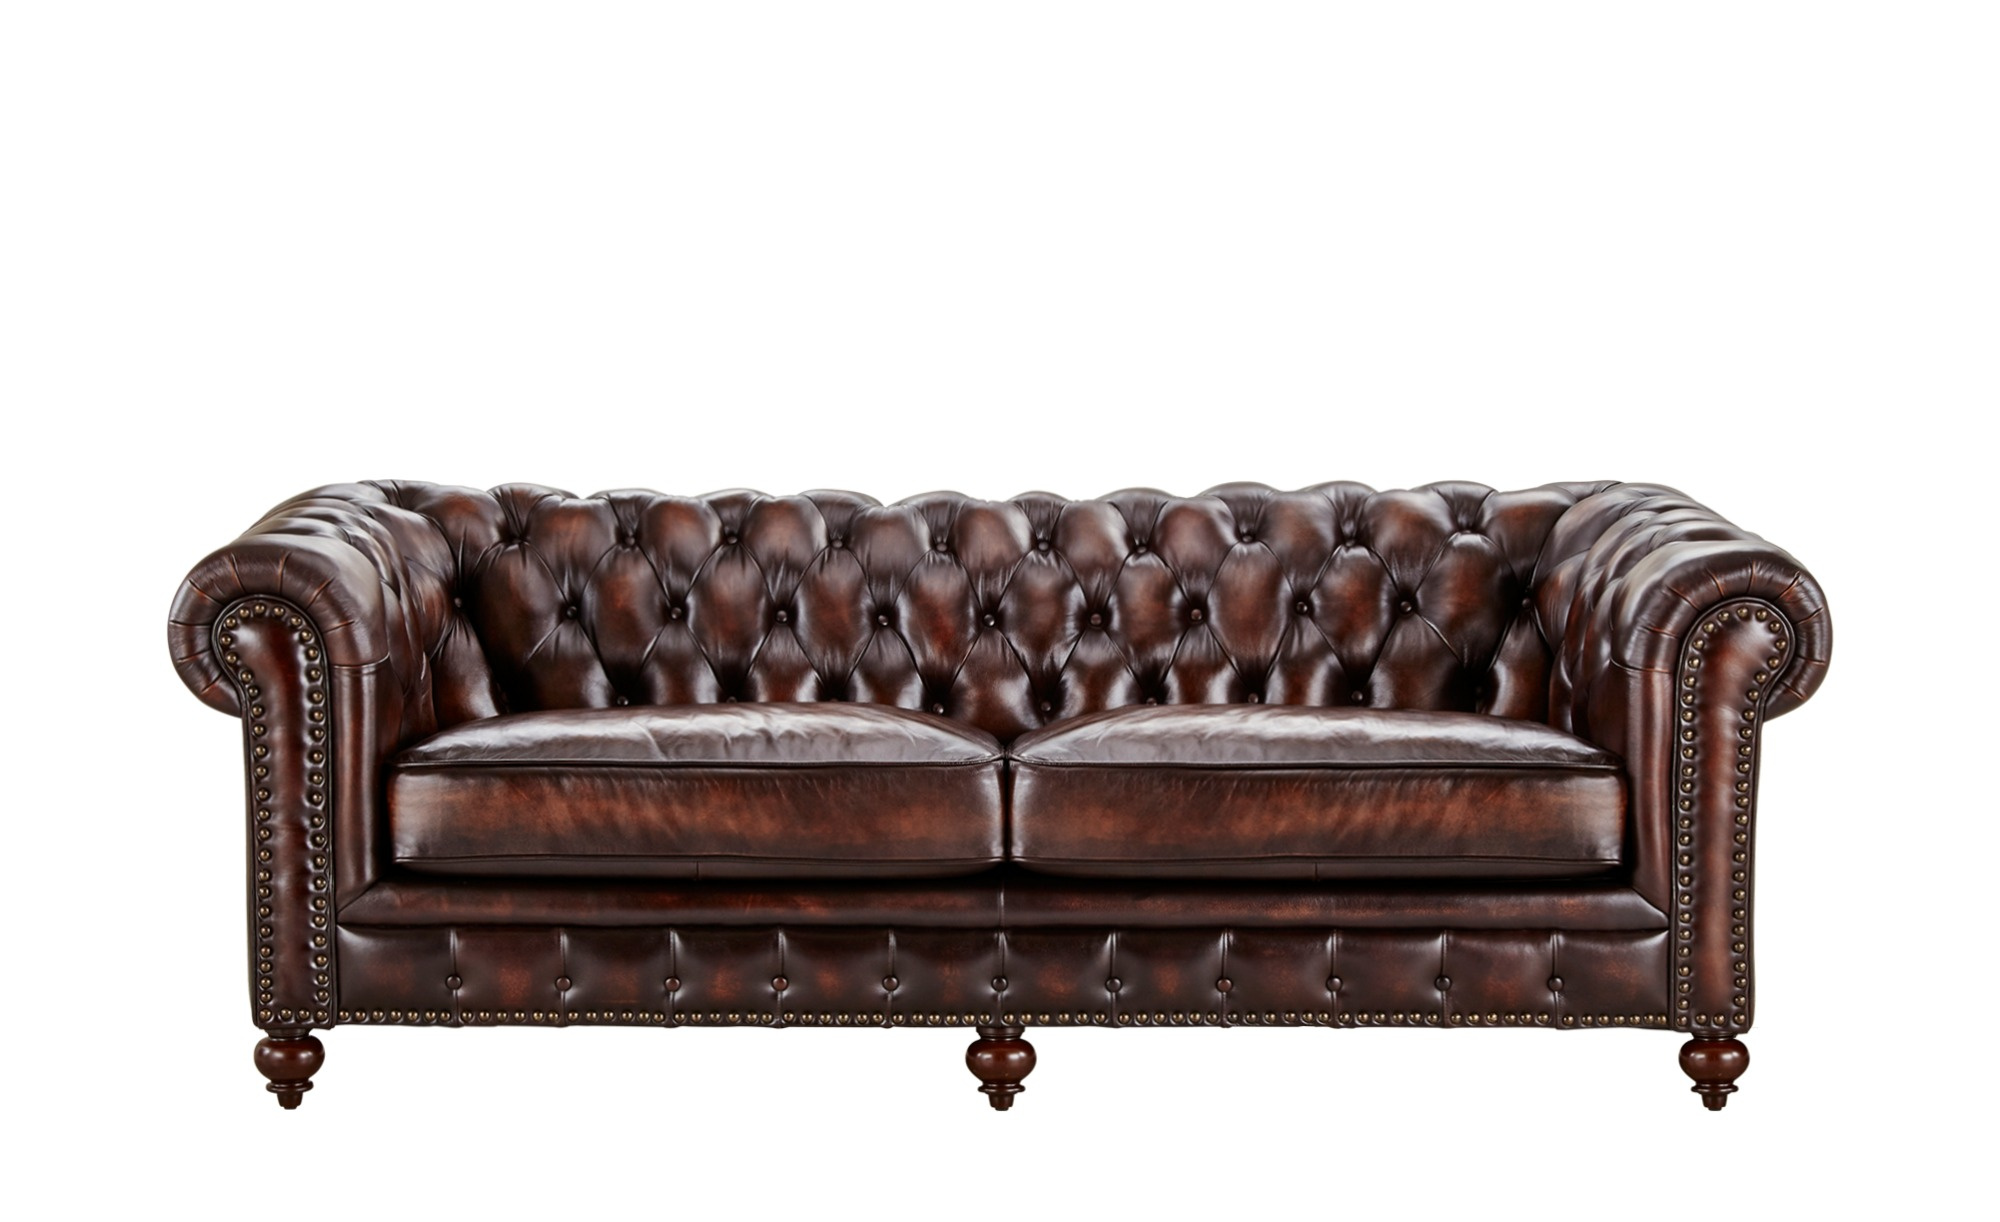 uno sofa 3 sitzig leder braun leder chesterfield. Black Bedroom Furniture Sets. Home Design Ideas